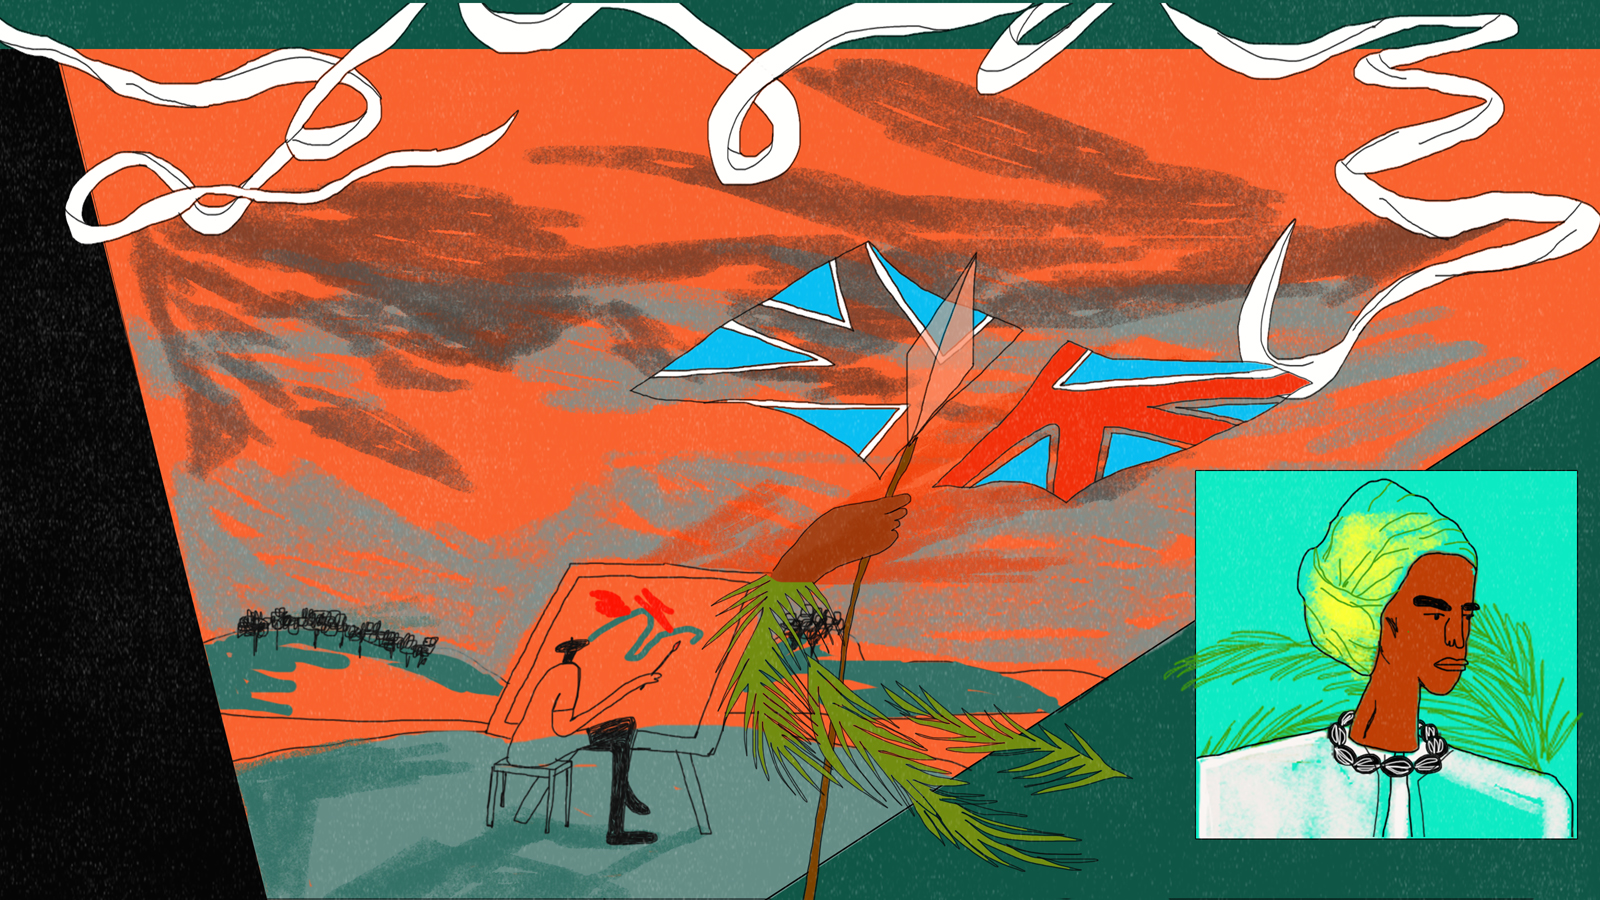 Illustration by Hannah Buckman interpreting John Agard's poetry. A ribbon, a man sat at an easel painting a landscape, a Union Jack flag cut in half and a portrait of a black woman